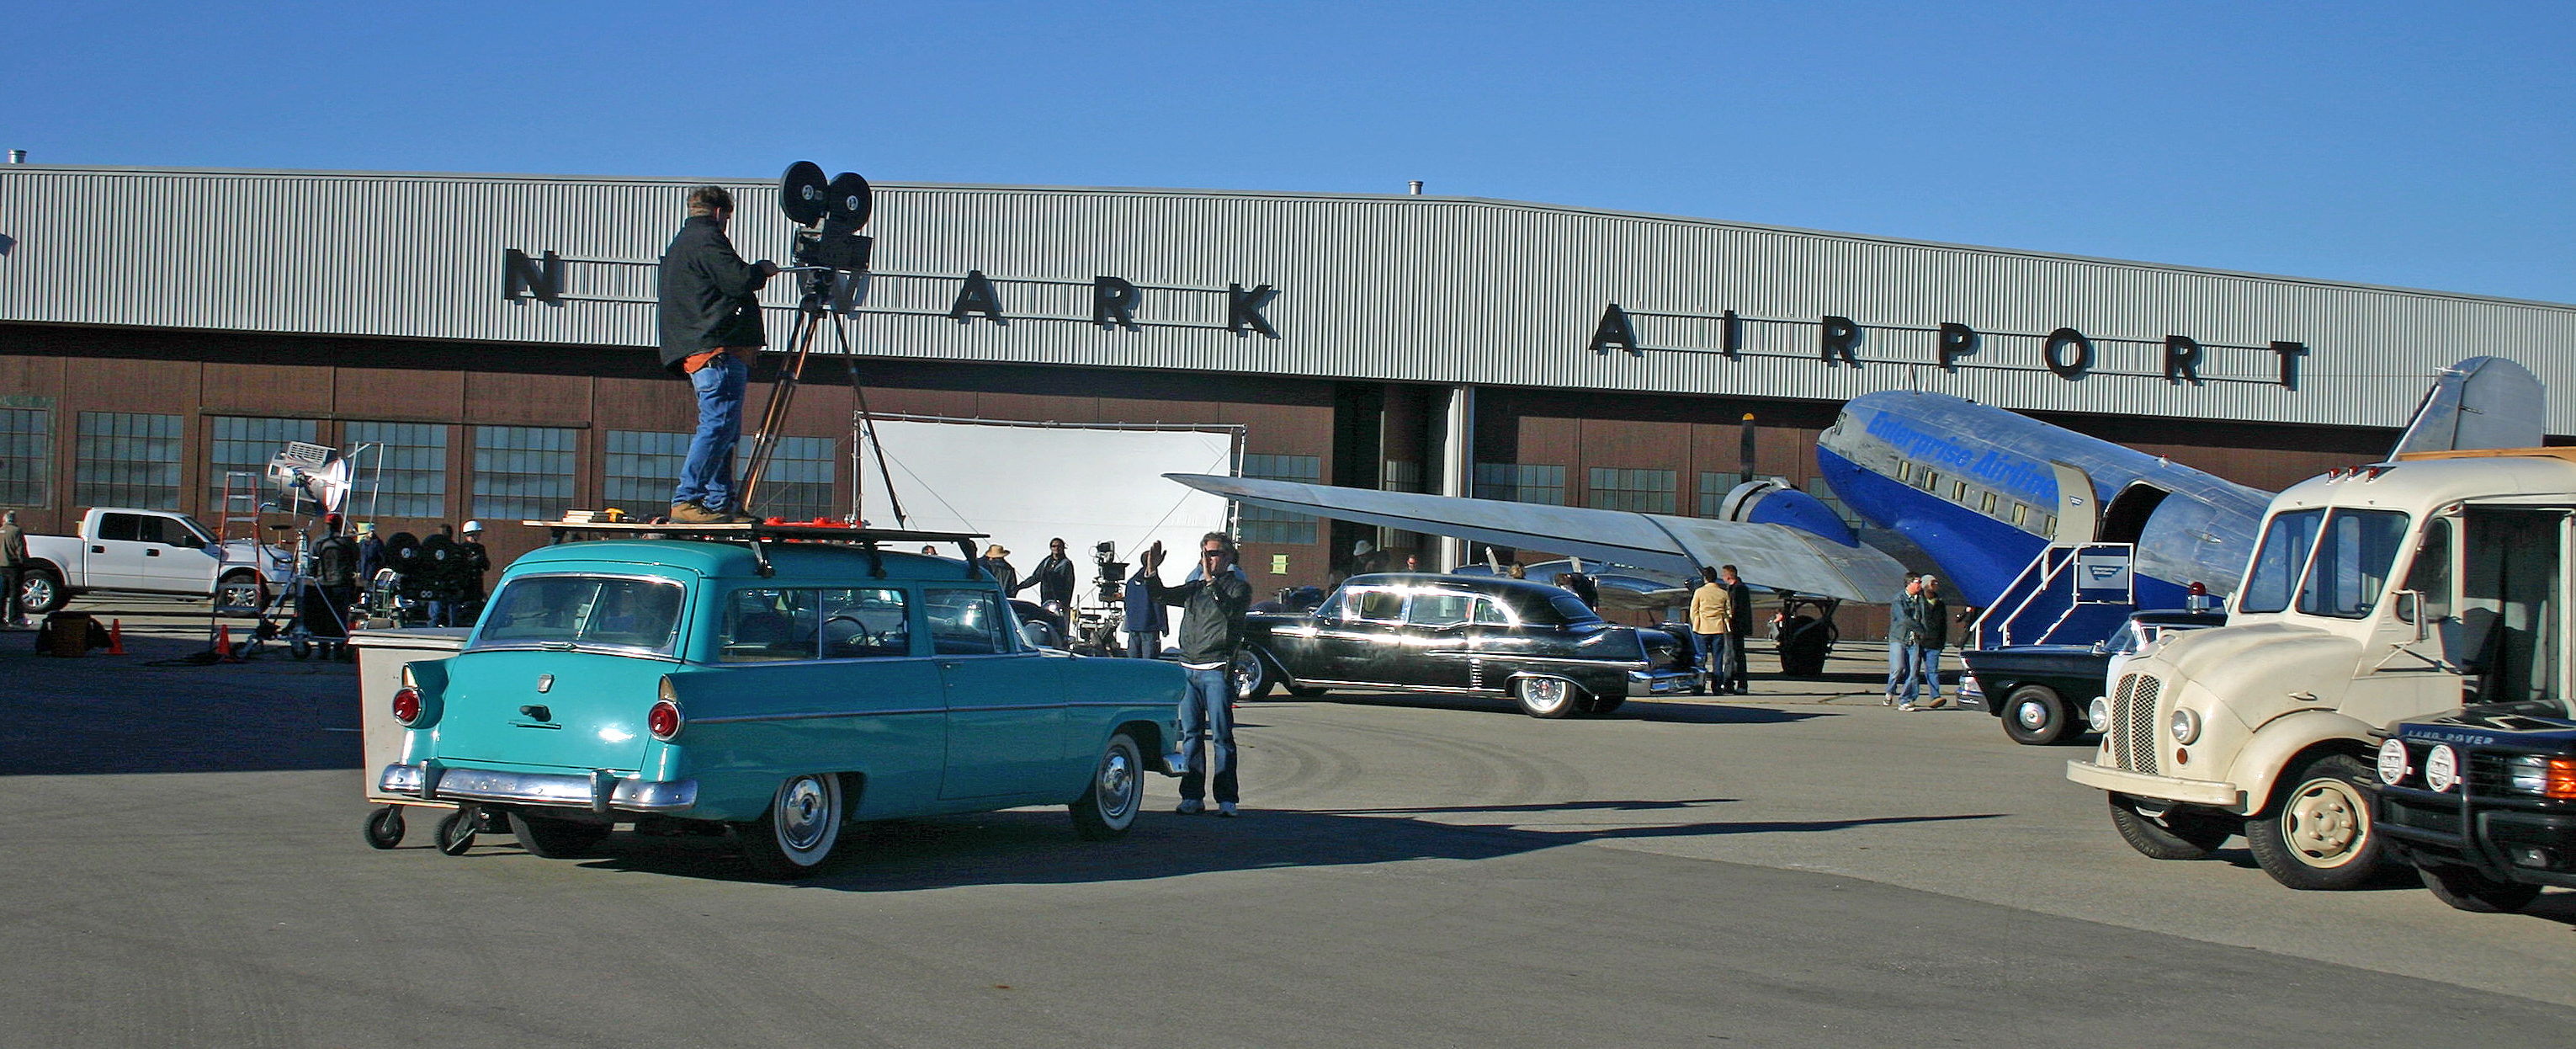 Image of a movie being filmed at the Brantford airport.